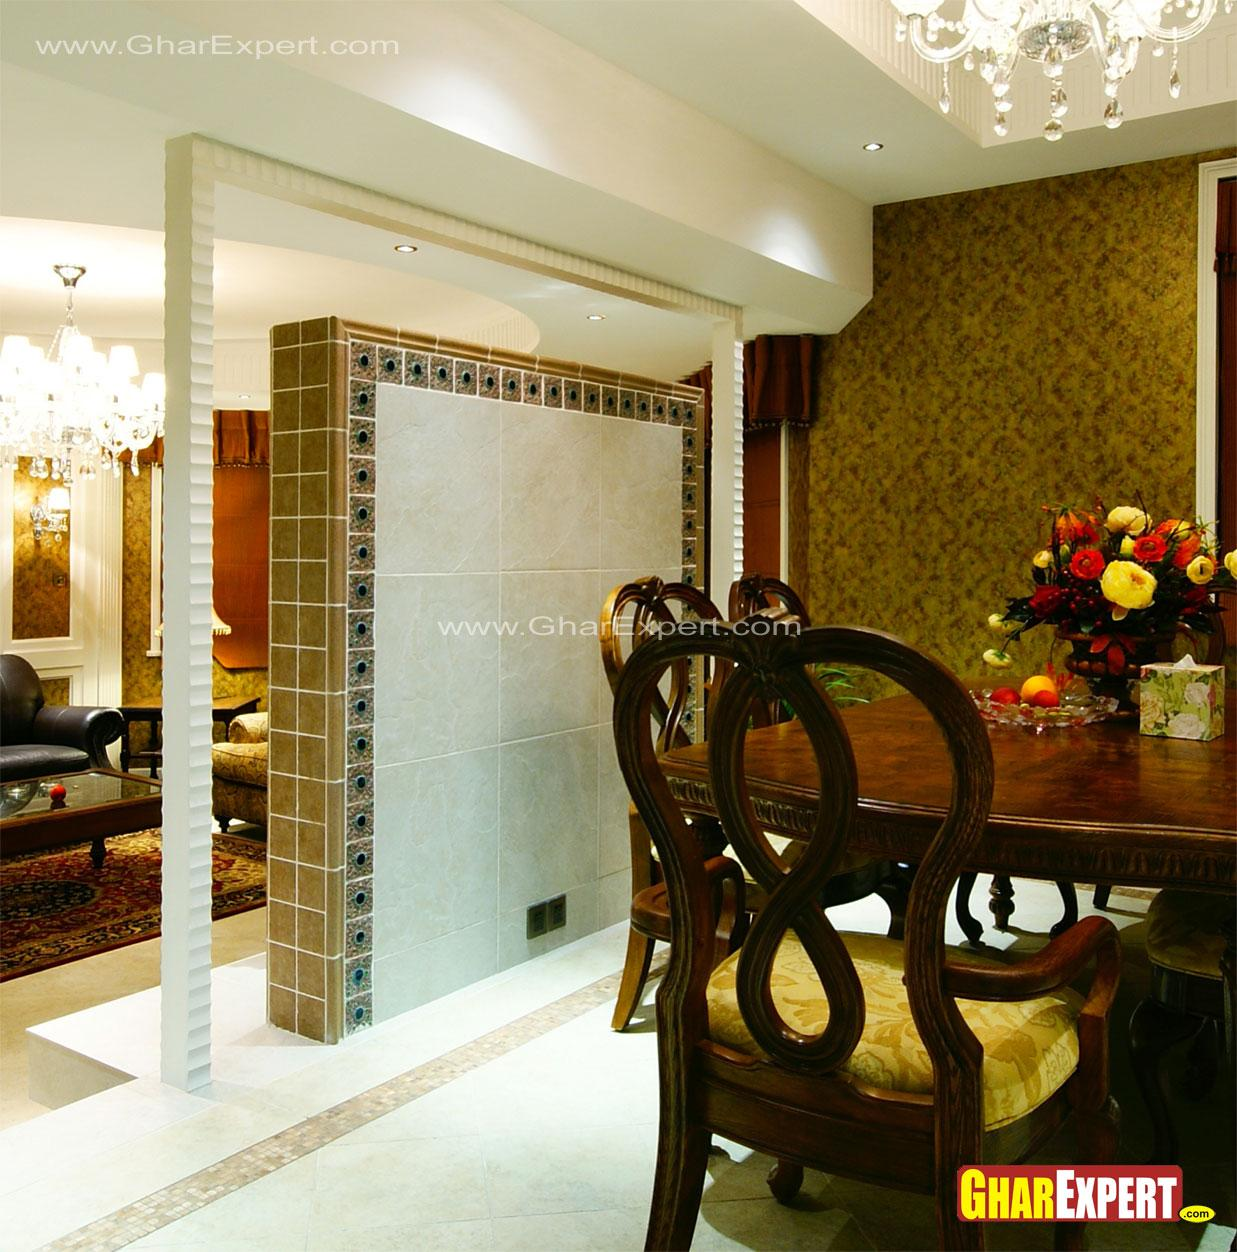 Partition Design For Living Room And Dining Hall Tiled Wall Partition In Drawing Room For Dining Area